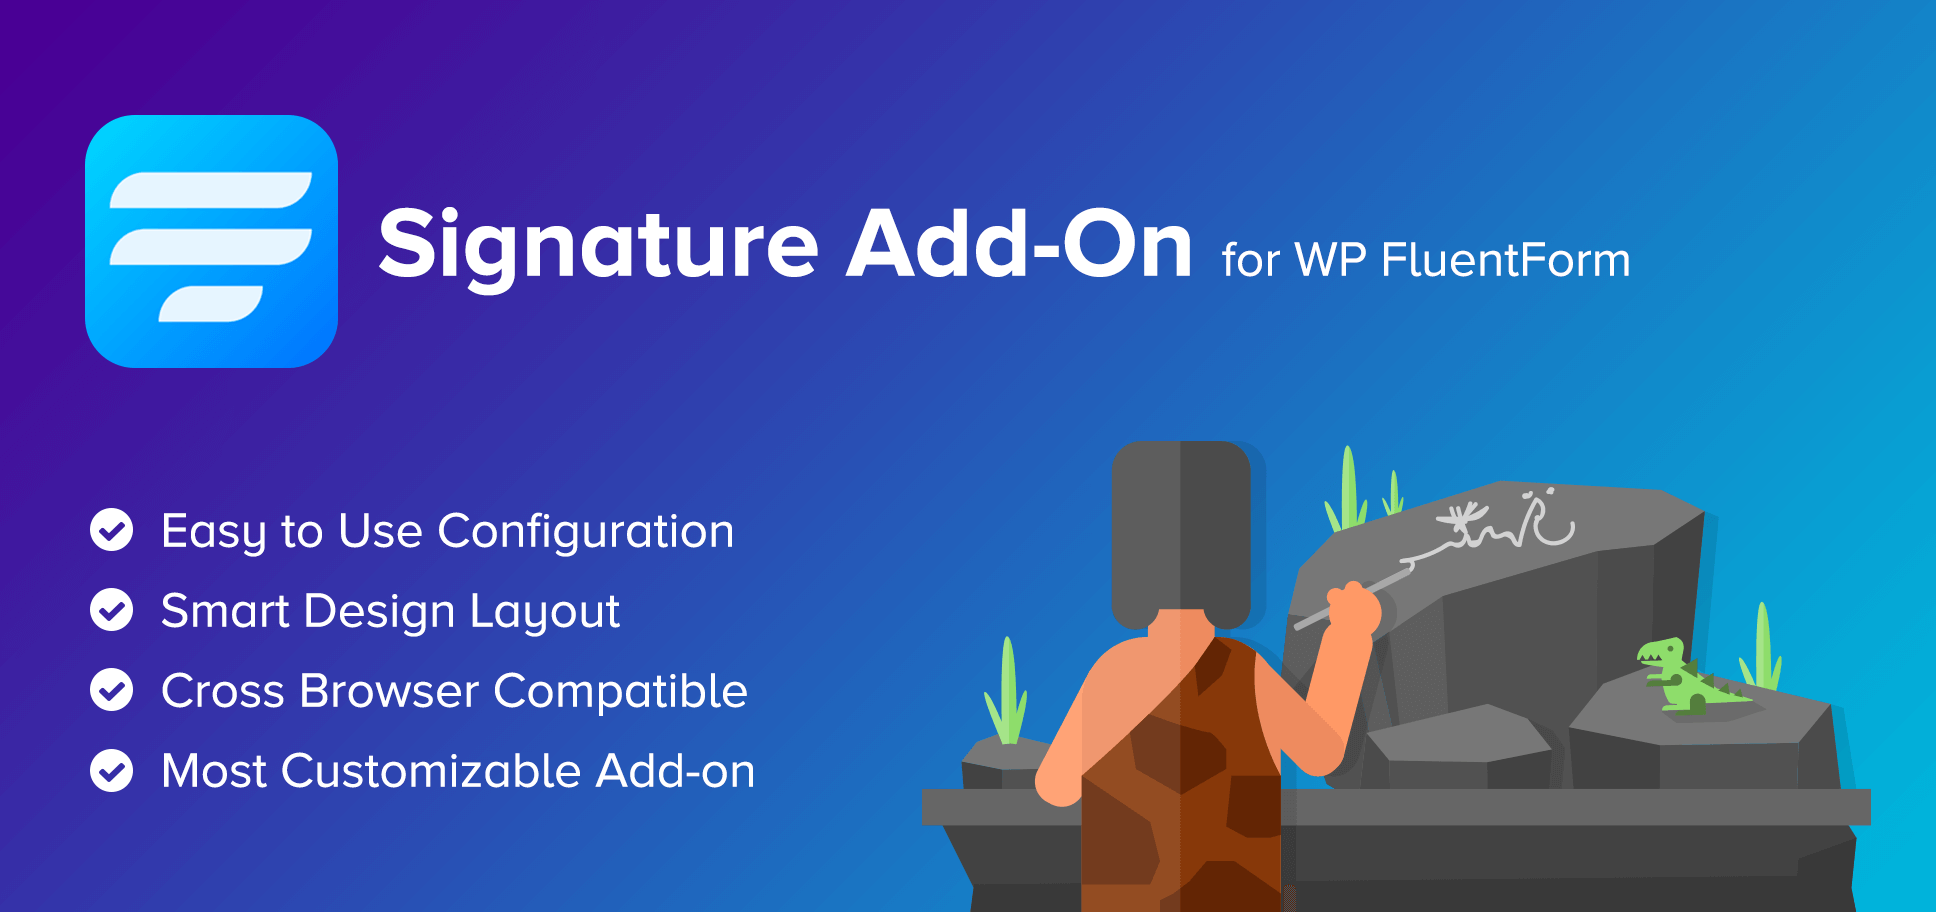 "<span itemprop=""name"">Signature Add-On for WP FluentForm</span>"